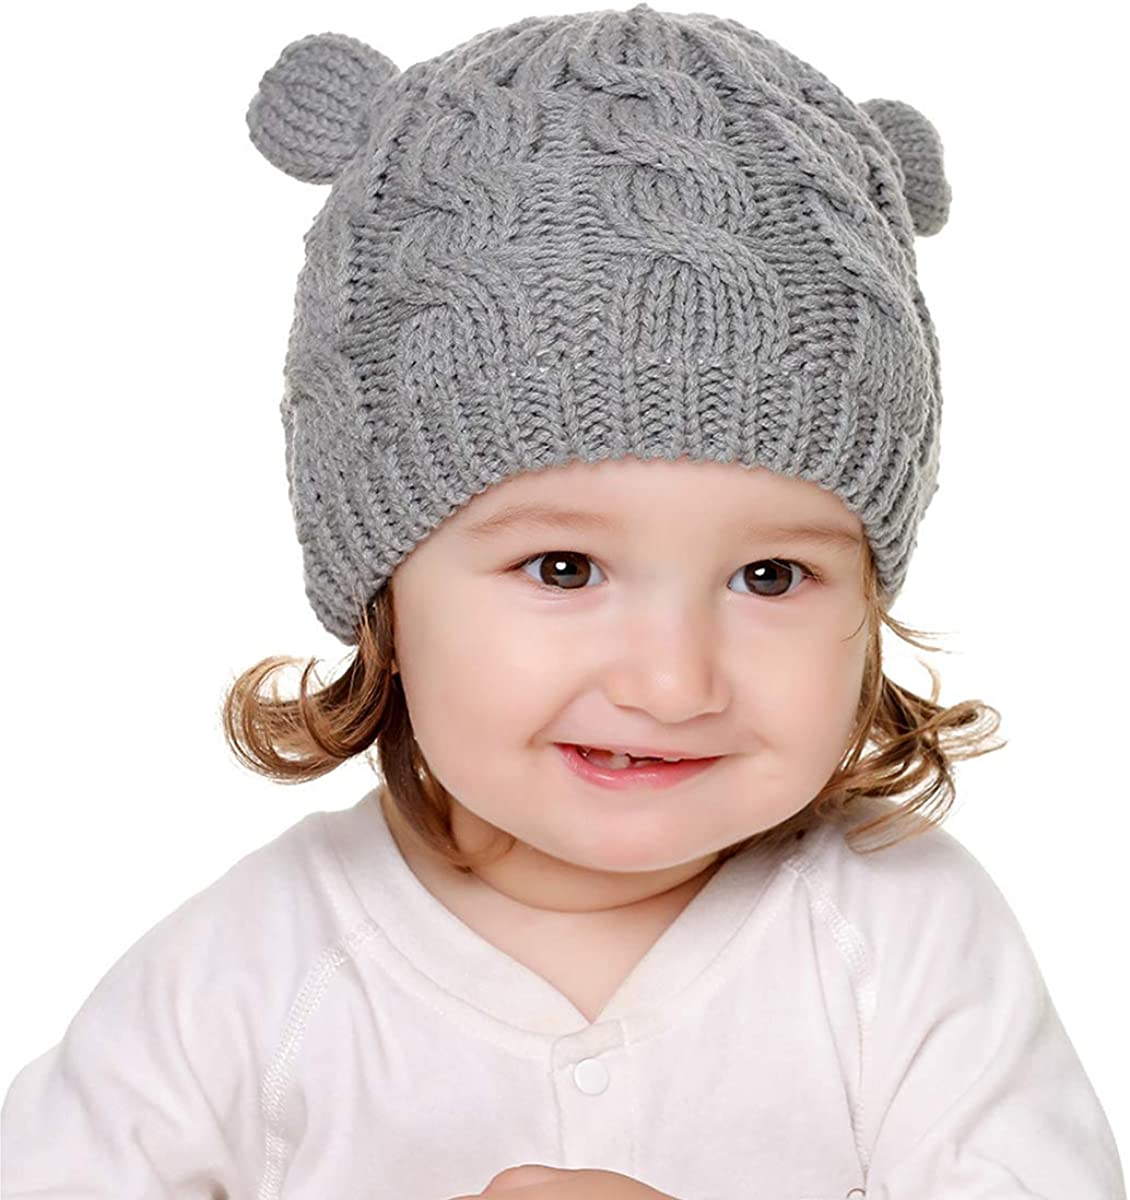 NCONCO Winter Baby Hat Mitten Set Cute Knitted Warm Beanie Hat for 0-18M Toddler Boys Girls